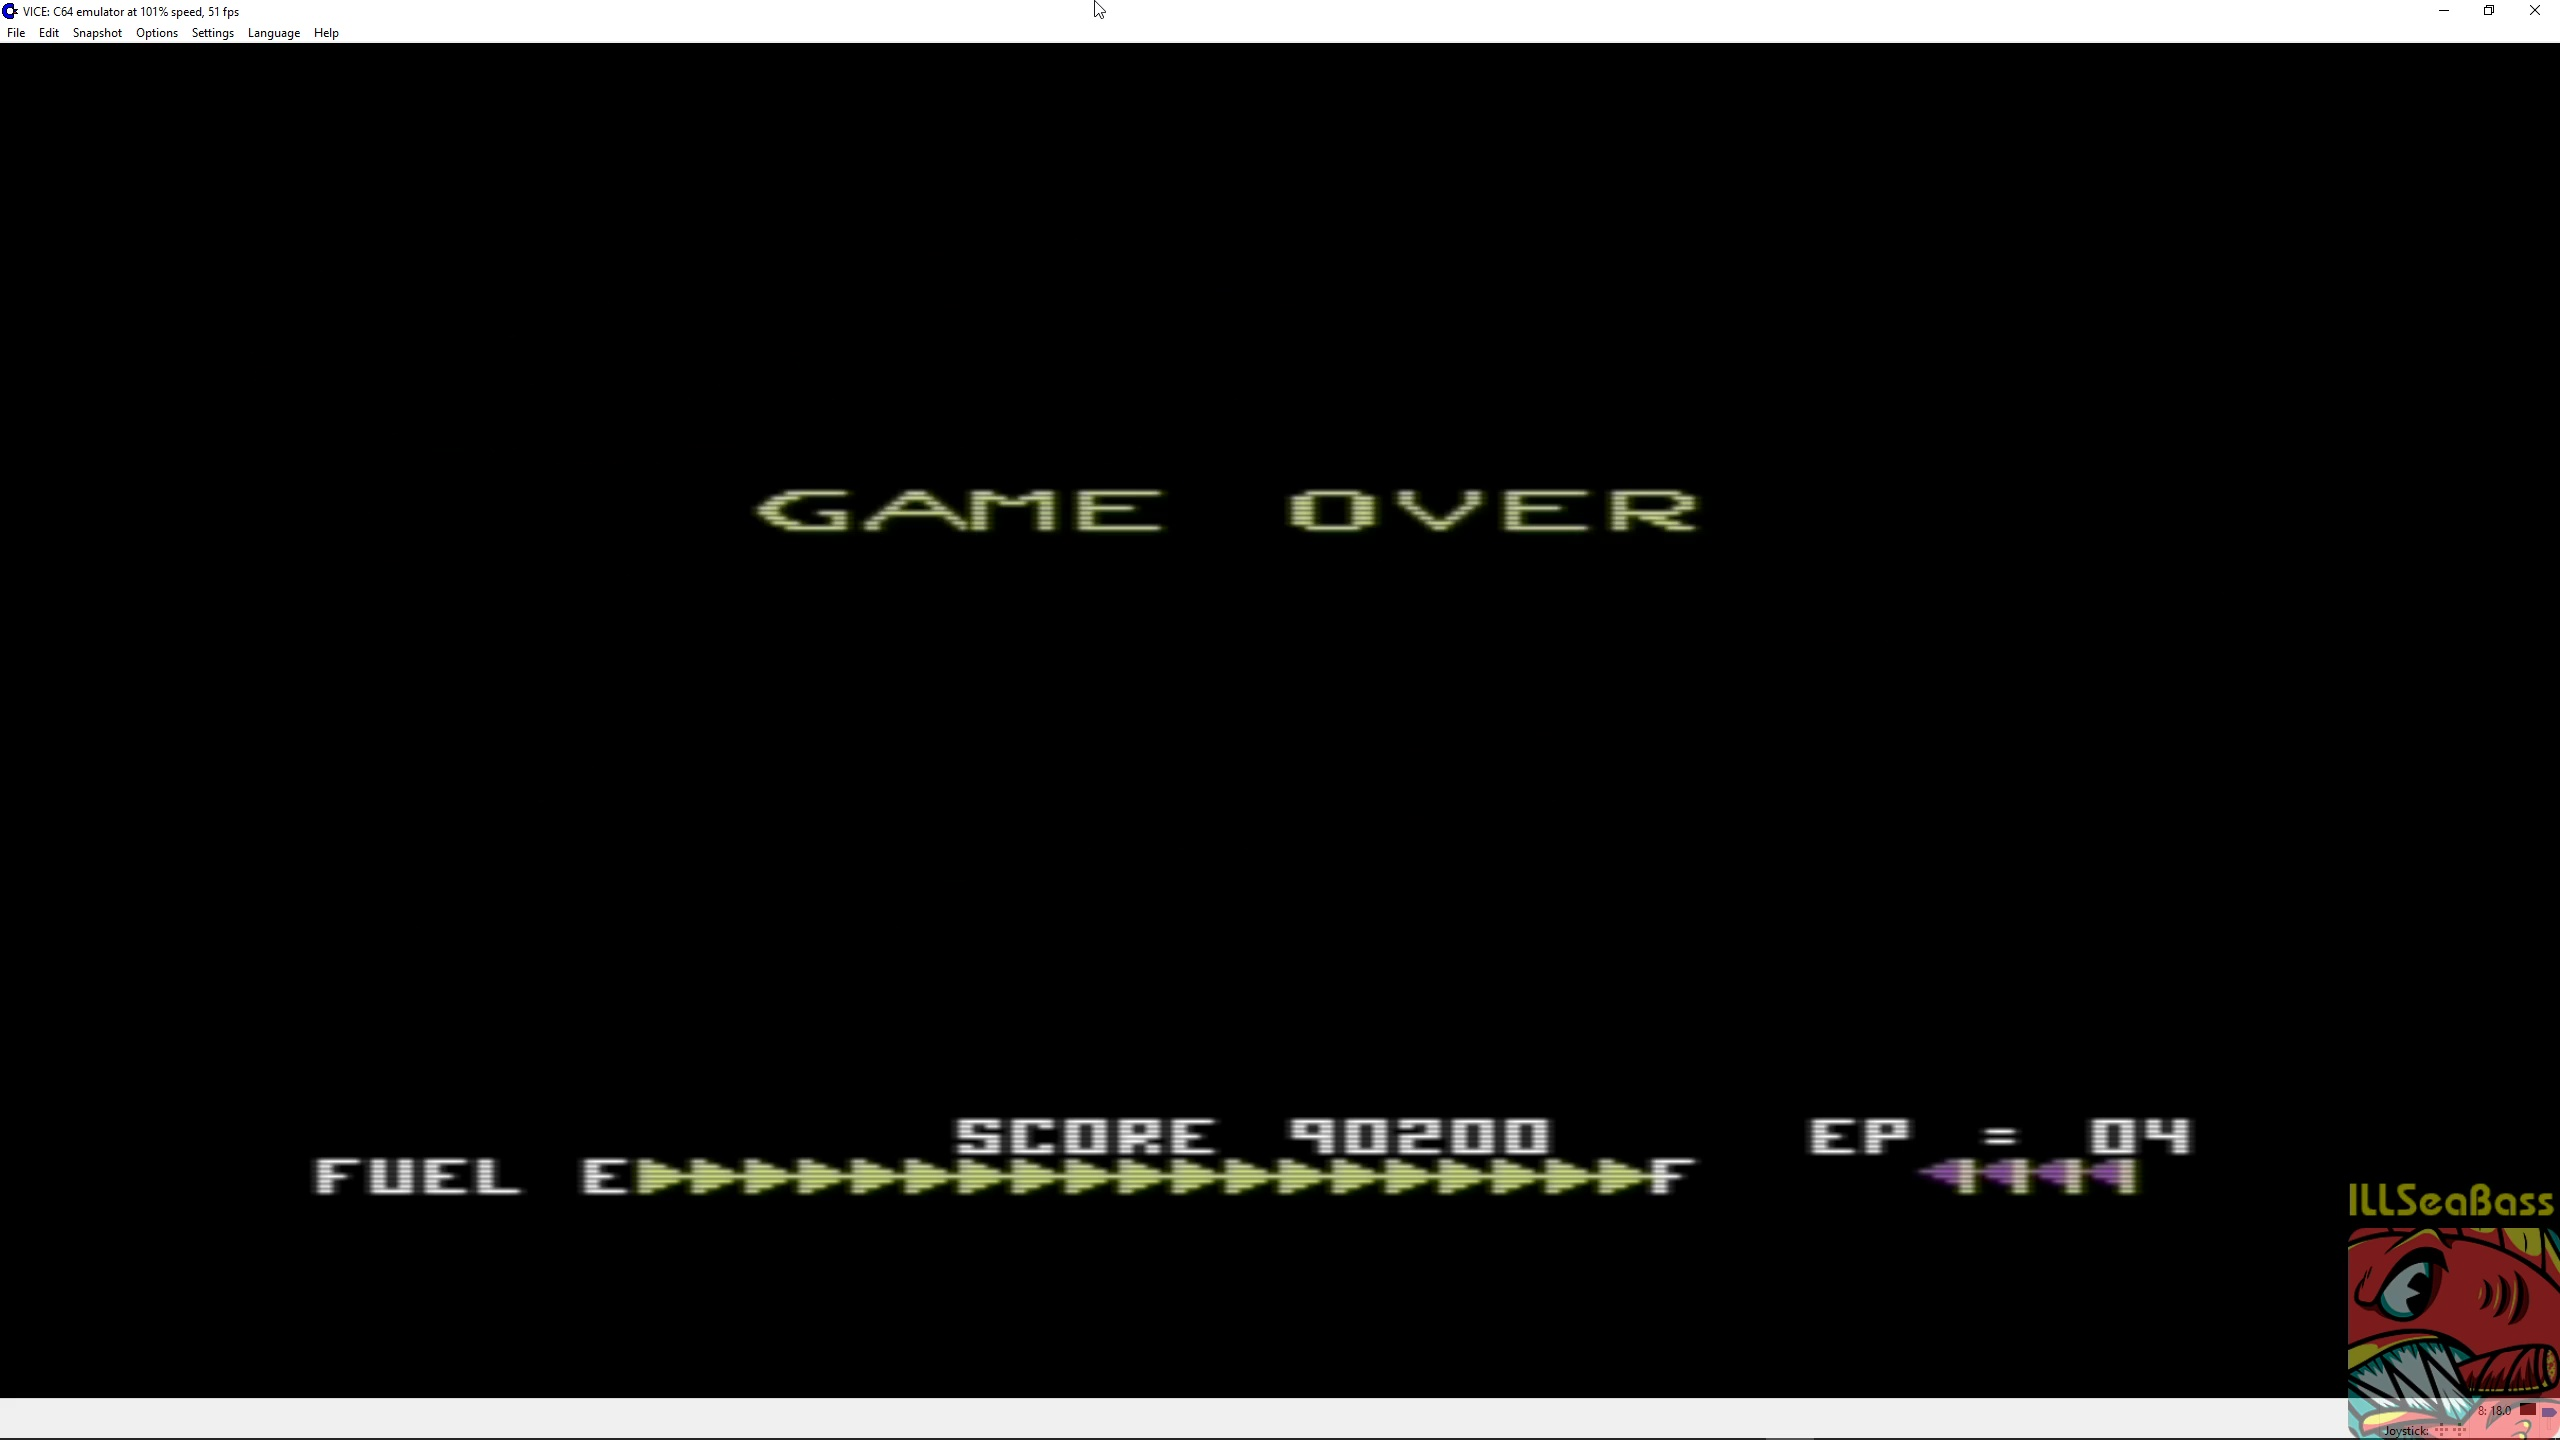 ILLSeaBass: Zaxxon: Sega (Commodore 64 Emulated) 90,200 points on 2018-03-20 21:00:22